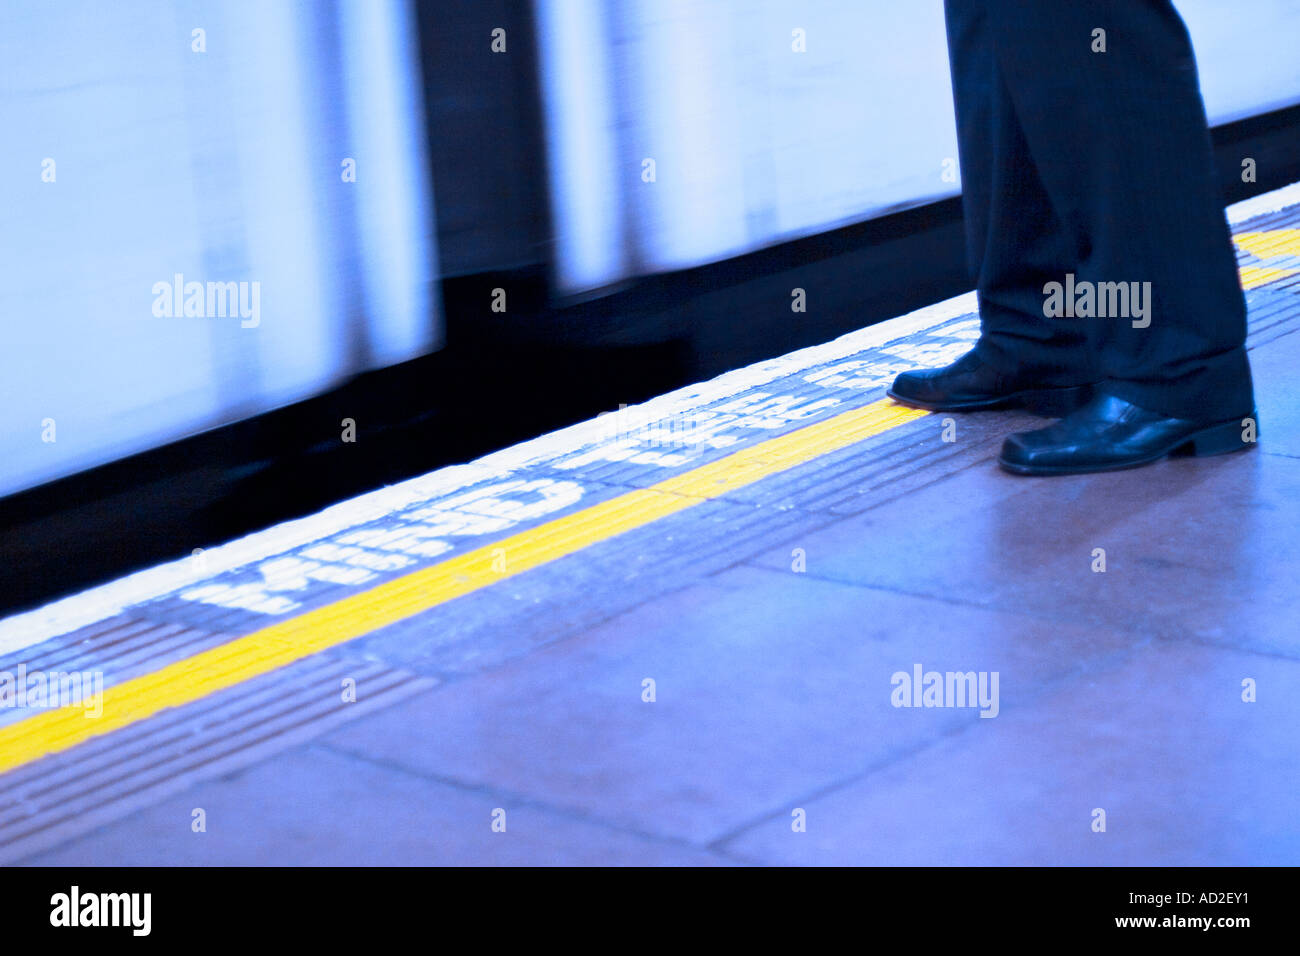 Young businessman stands on London Underground platform as tube train enters station - Stock Image